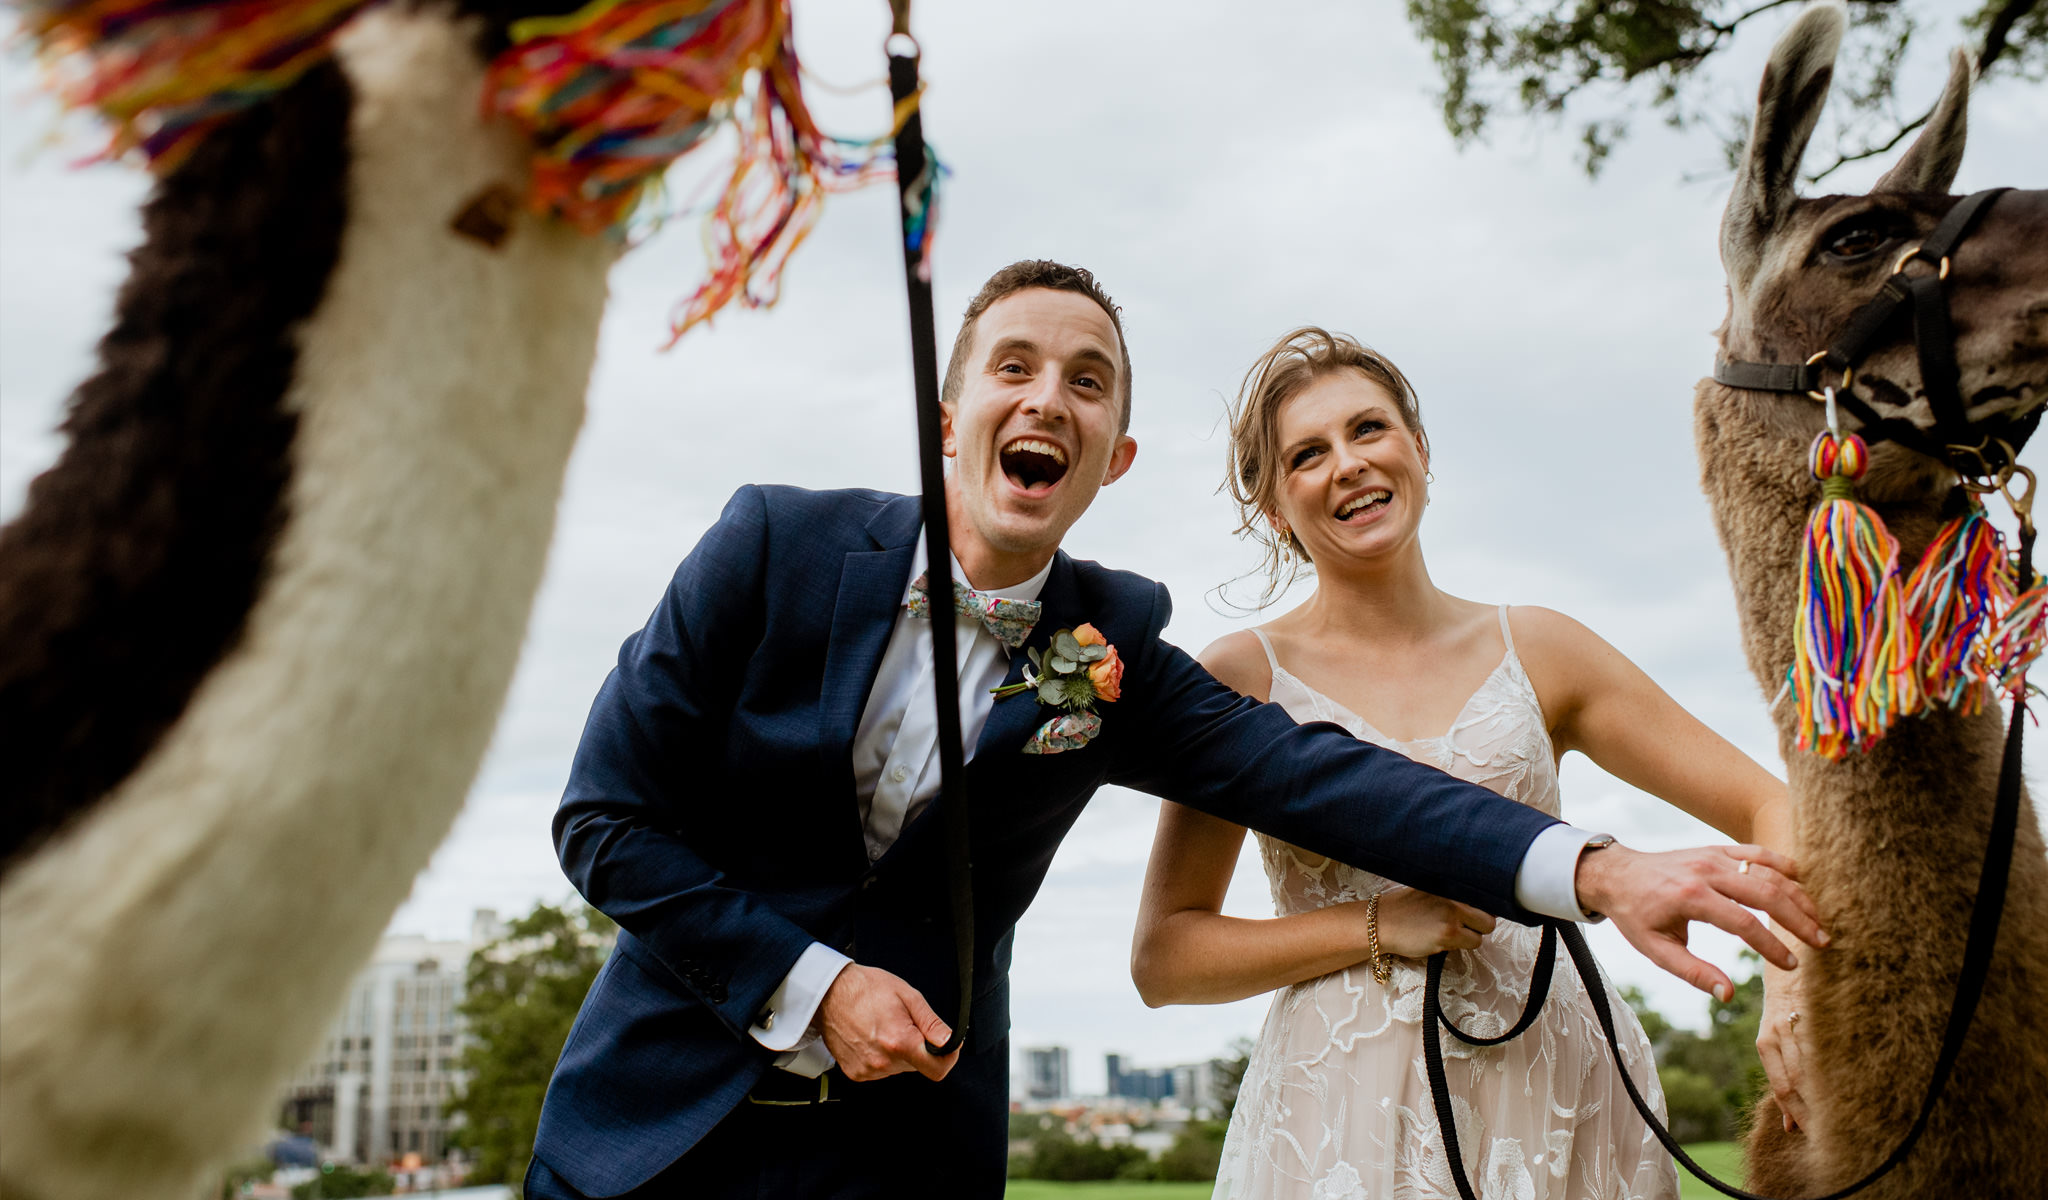 Newlyweds laugh as they each hold leashes attached to llamas